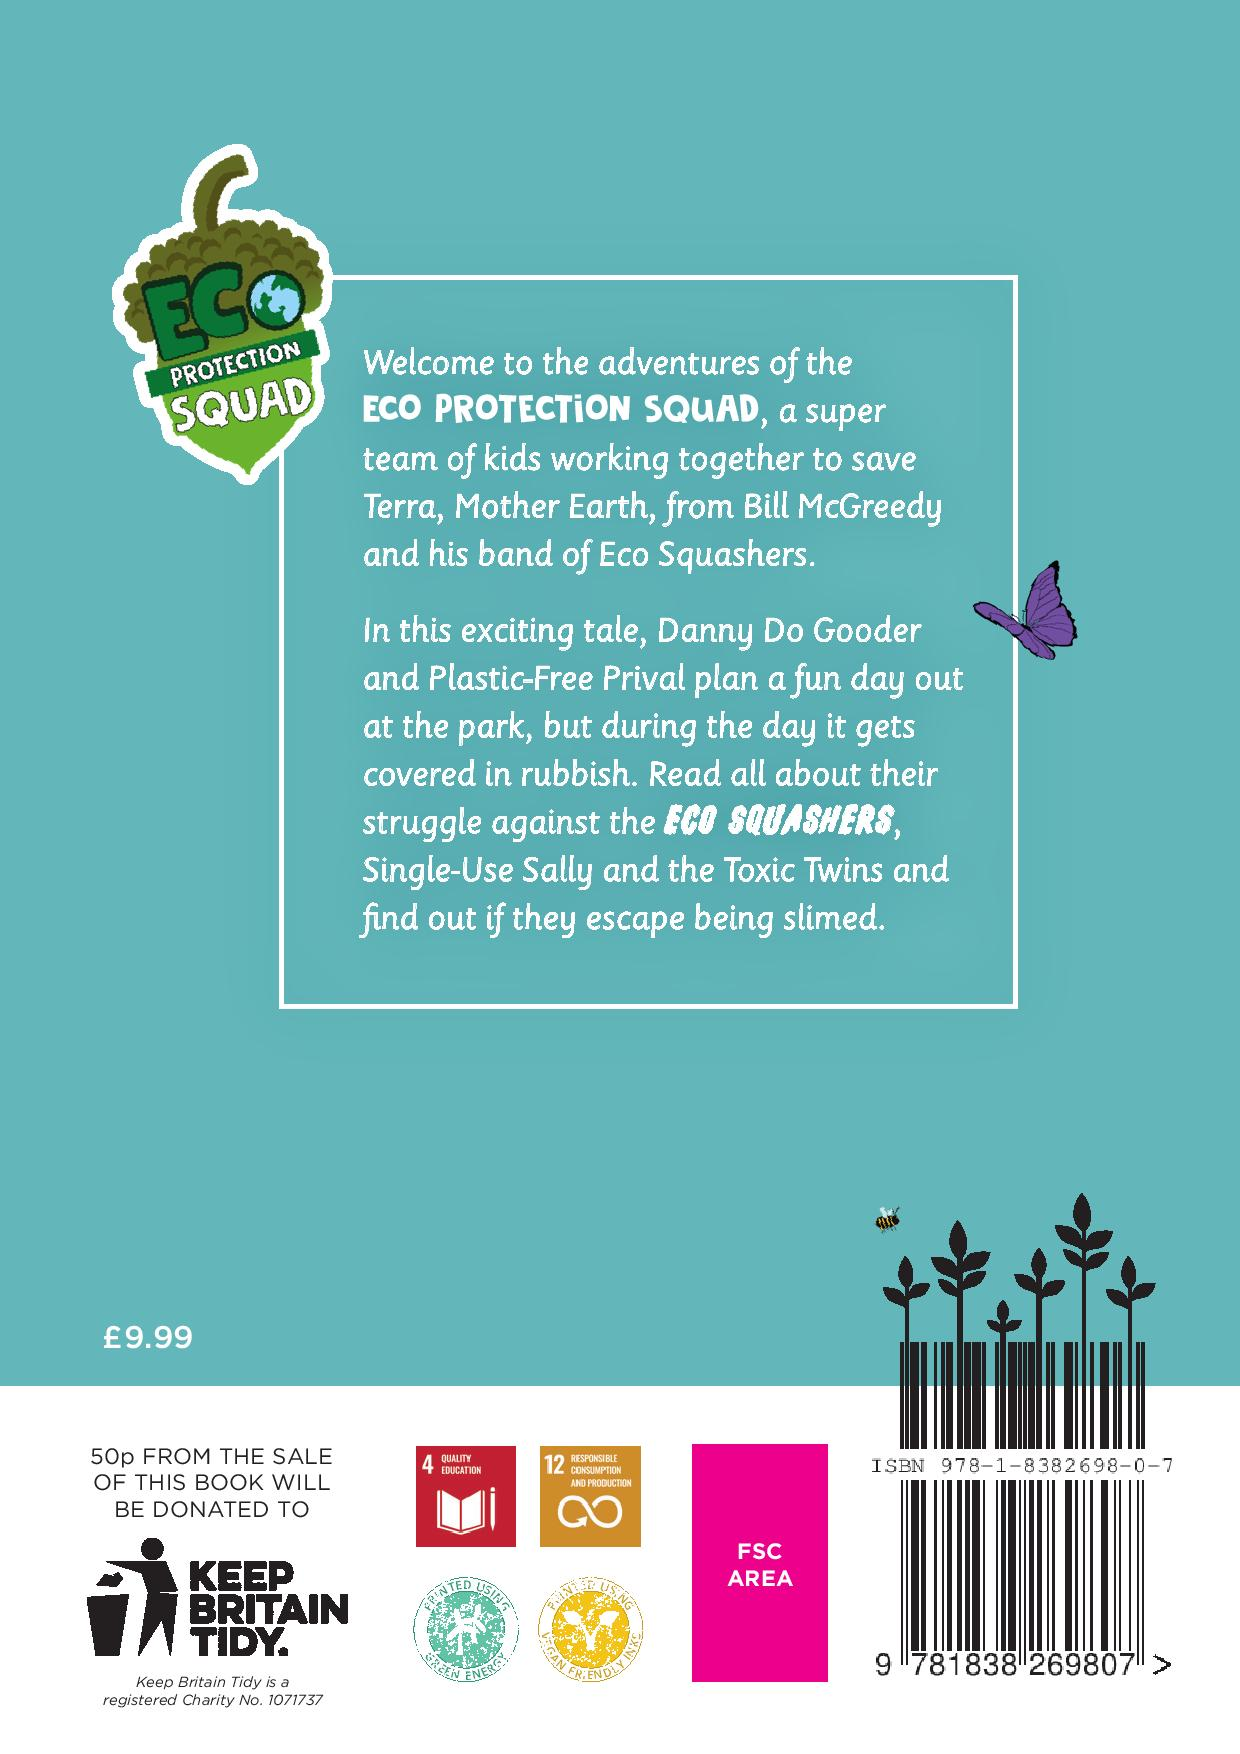 Eco Friendly Children's Book Litter Pick Activity – Eco Protection Squad Go To The Park Kind Shop 10